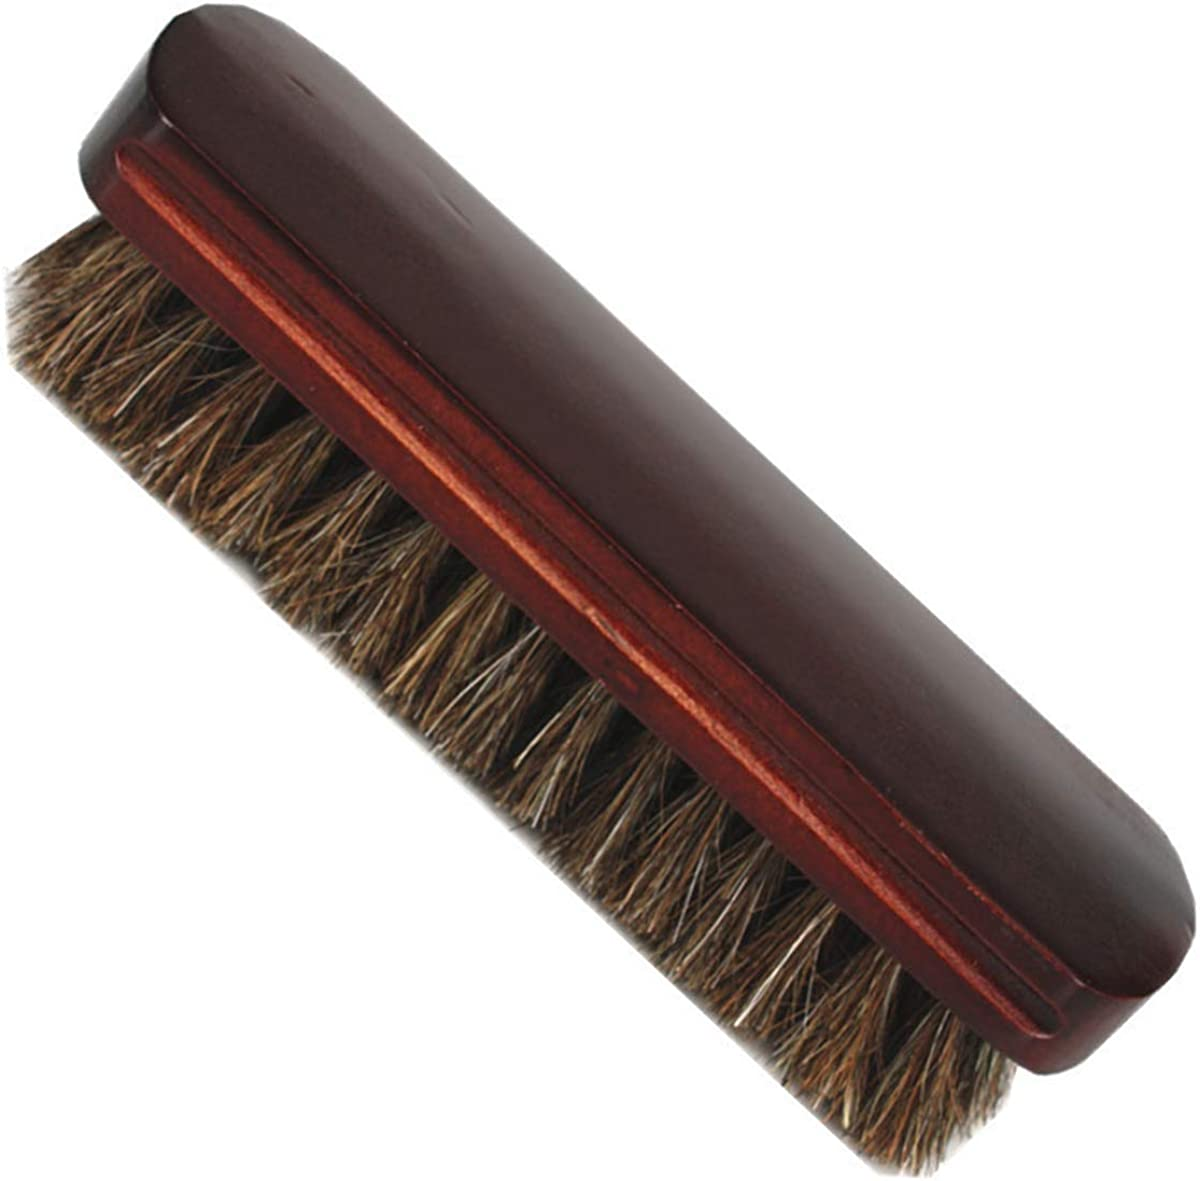 Car Seats Horsehair Brushes Wooden Soft Shoe Brush for Boots Sofas Interiors Shoes Furniture